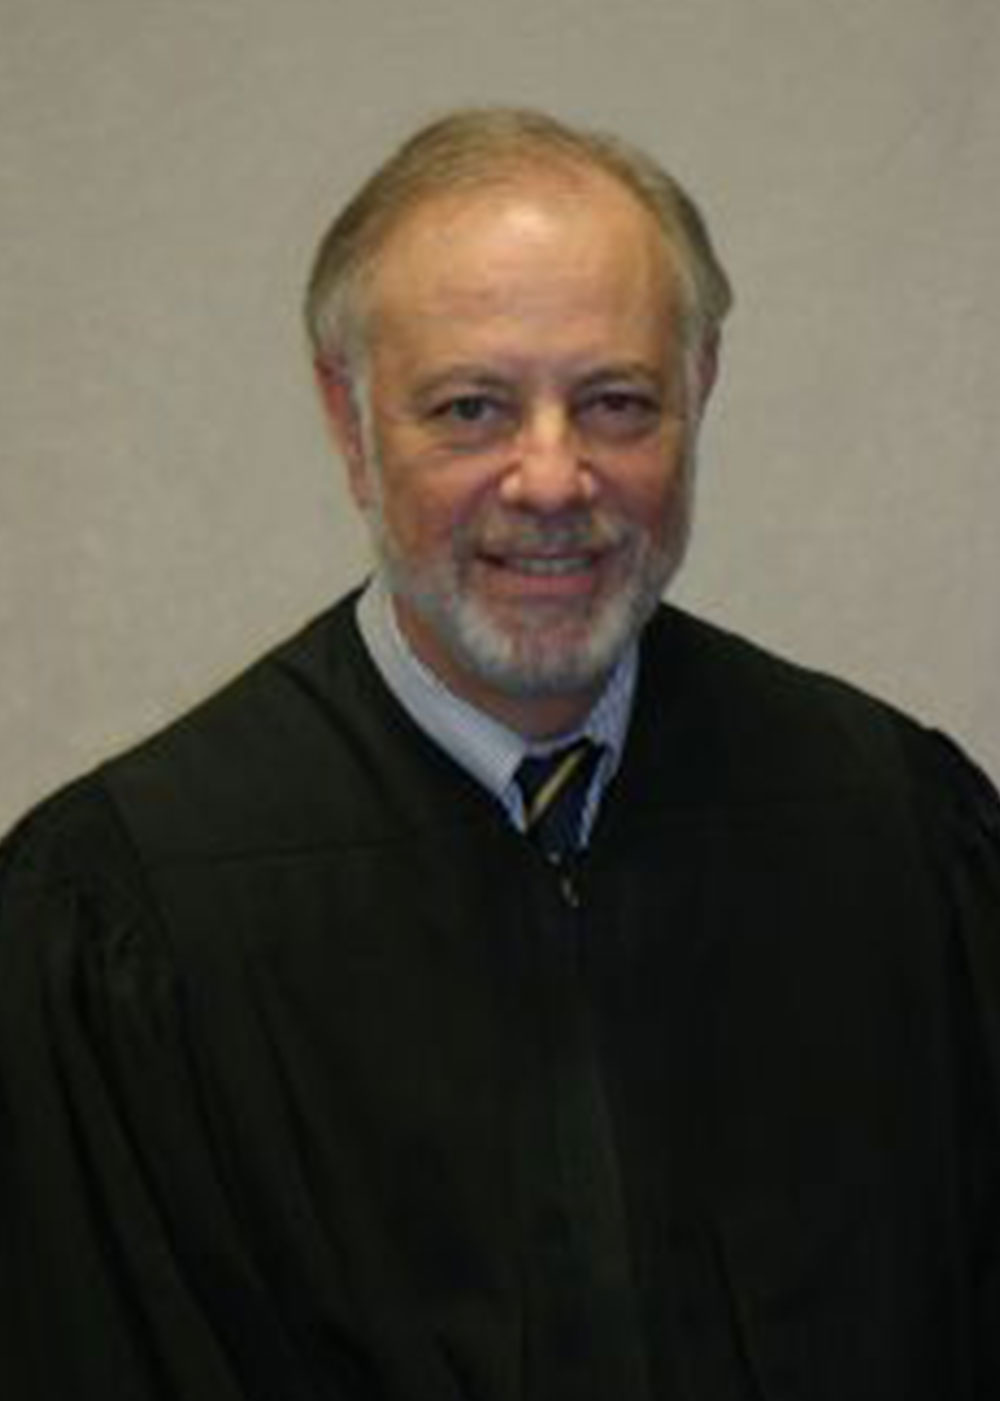 Judge Stan Morris